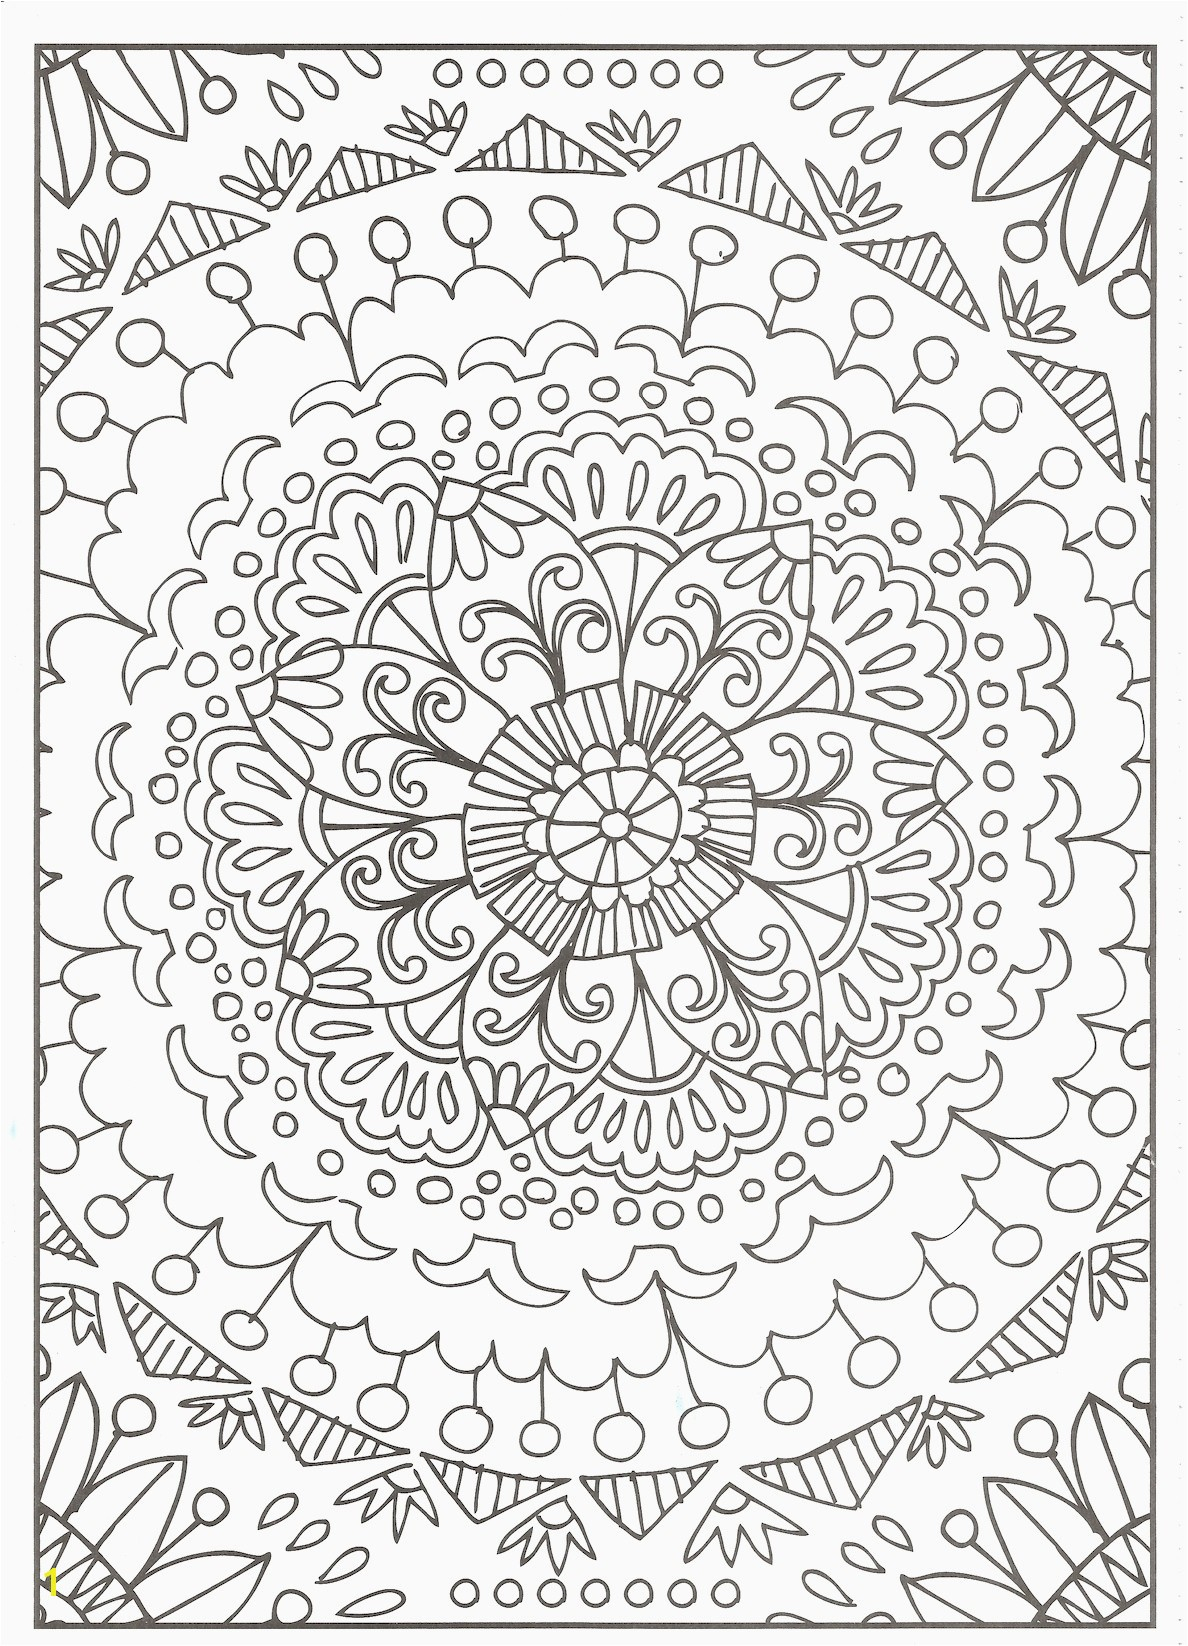 Free Printable Flower Coloring Pages for Adults Inspirational Cool Vases Flower Vase Coloring Page Pages Flowers